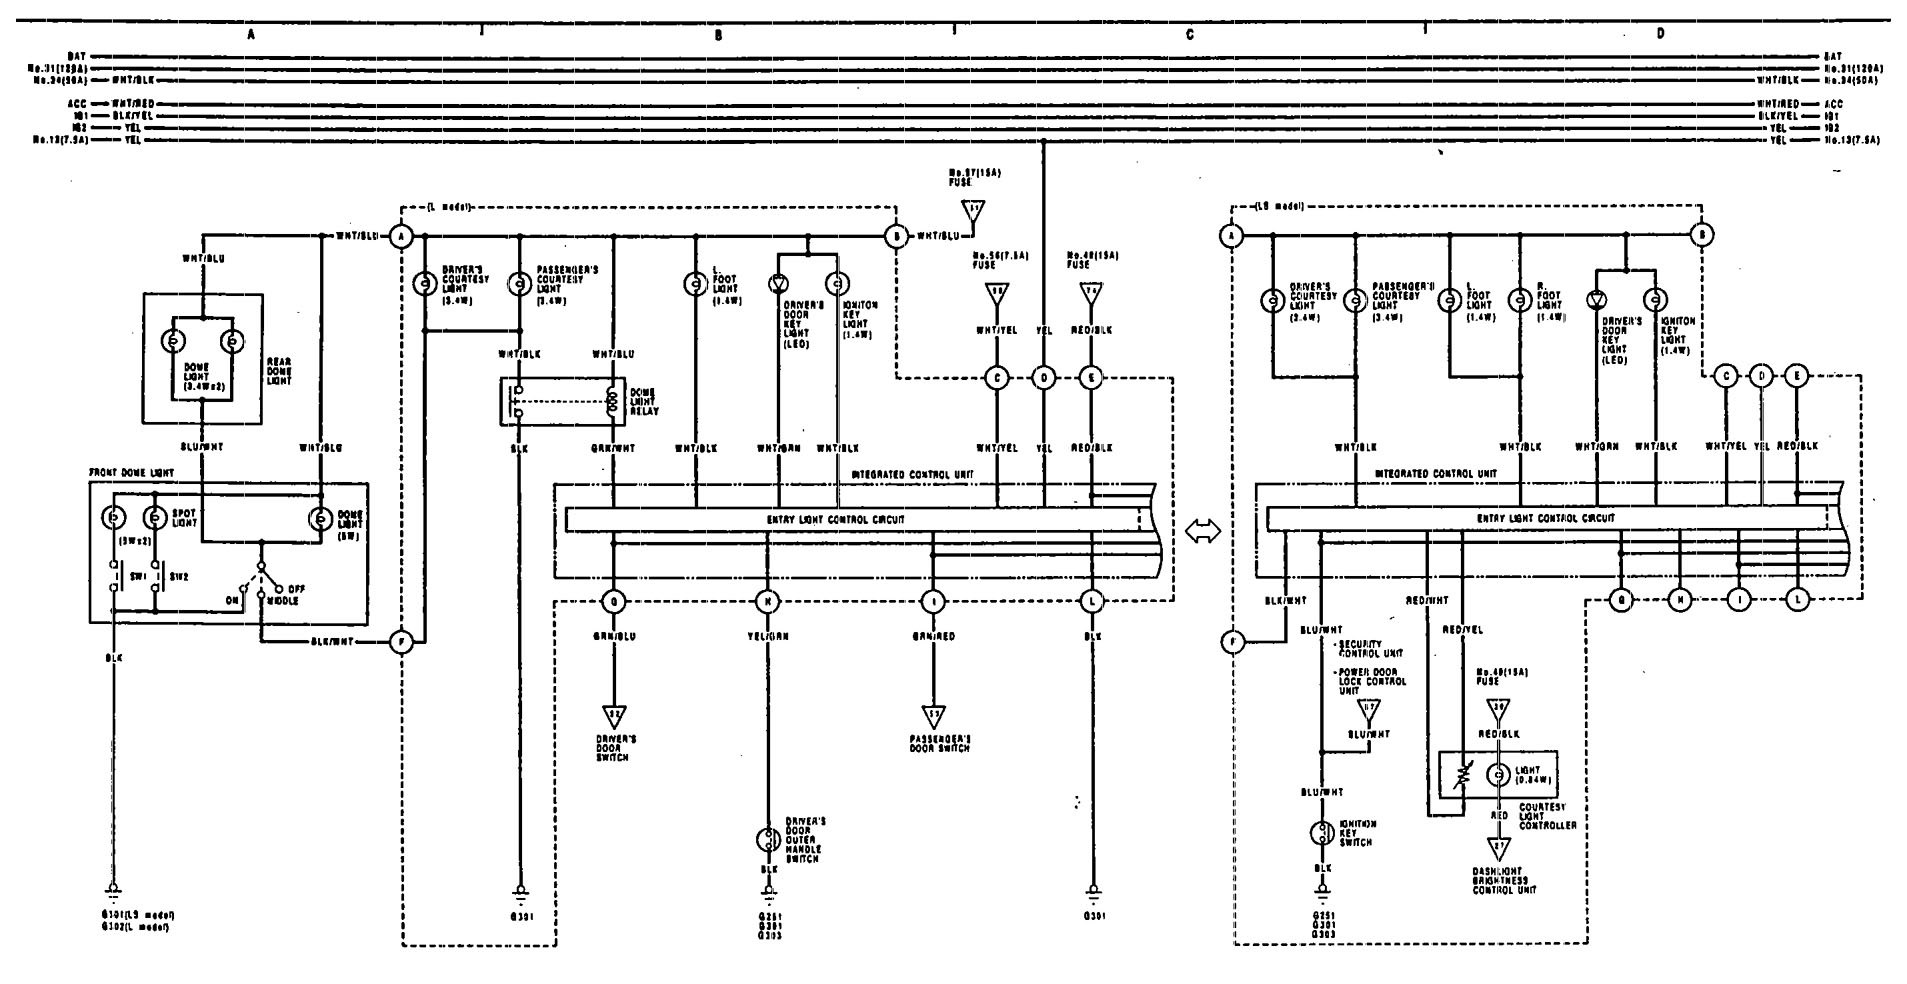 1992 Acura Vigor Wiring Diagram Just Another Data Chevrolet Uplander Legend 1991 Clock Carknowledge Chevy